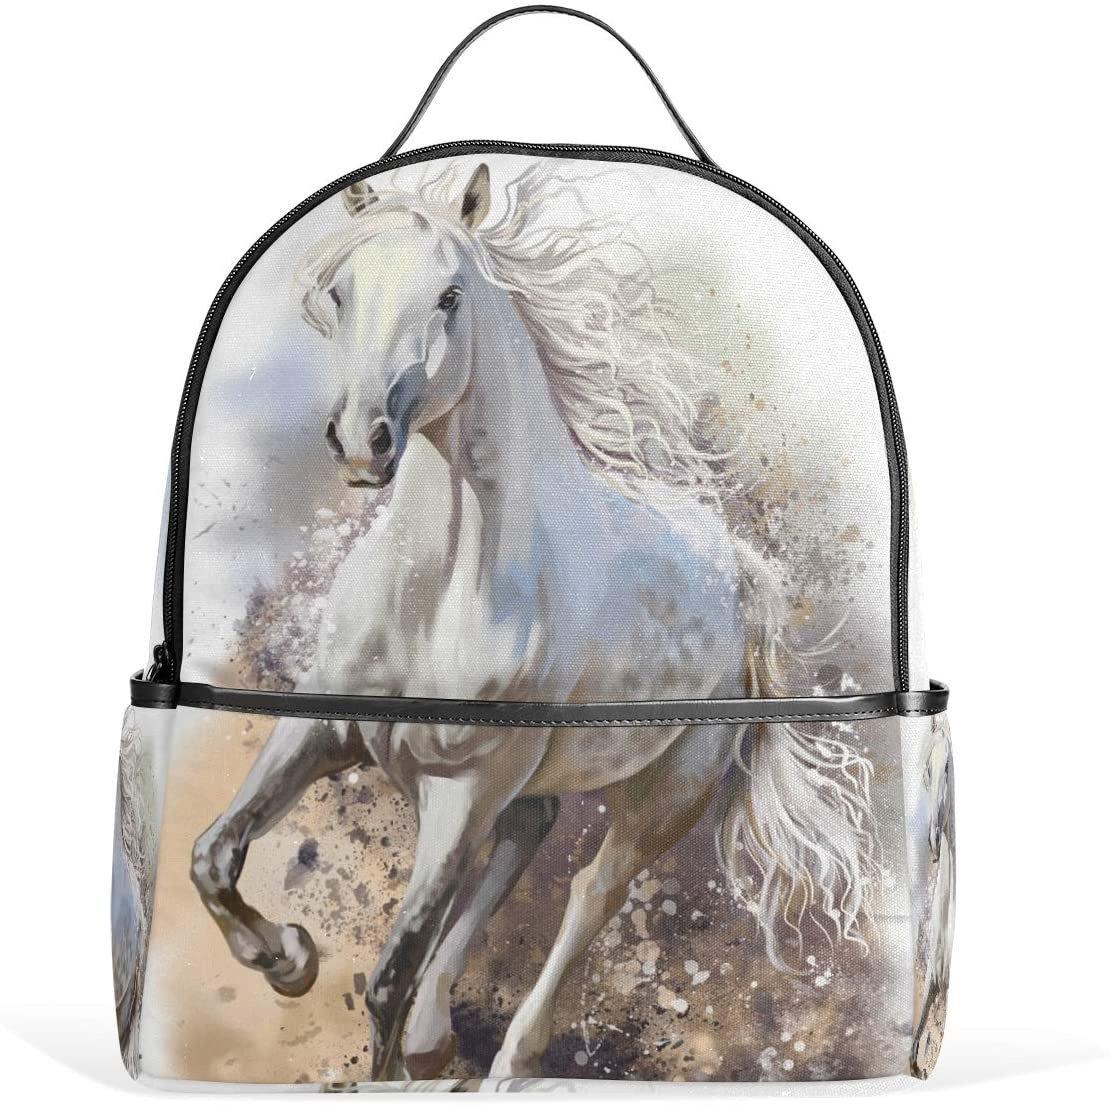 Kids School Backpack White Horse Bookbag for Boys Girls Lightweight Casual Travel Bag Large Capacity Daypack